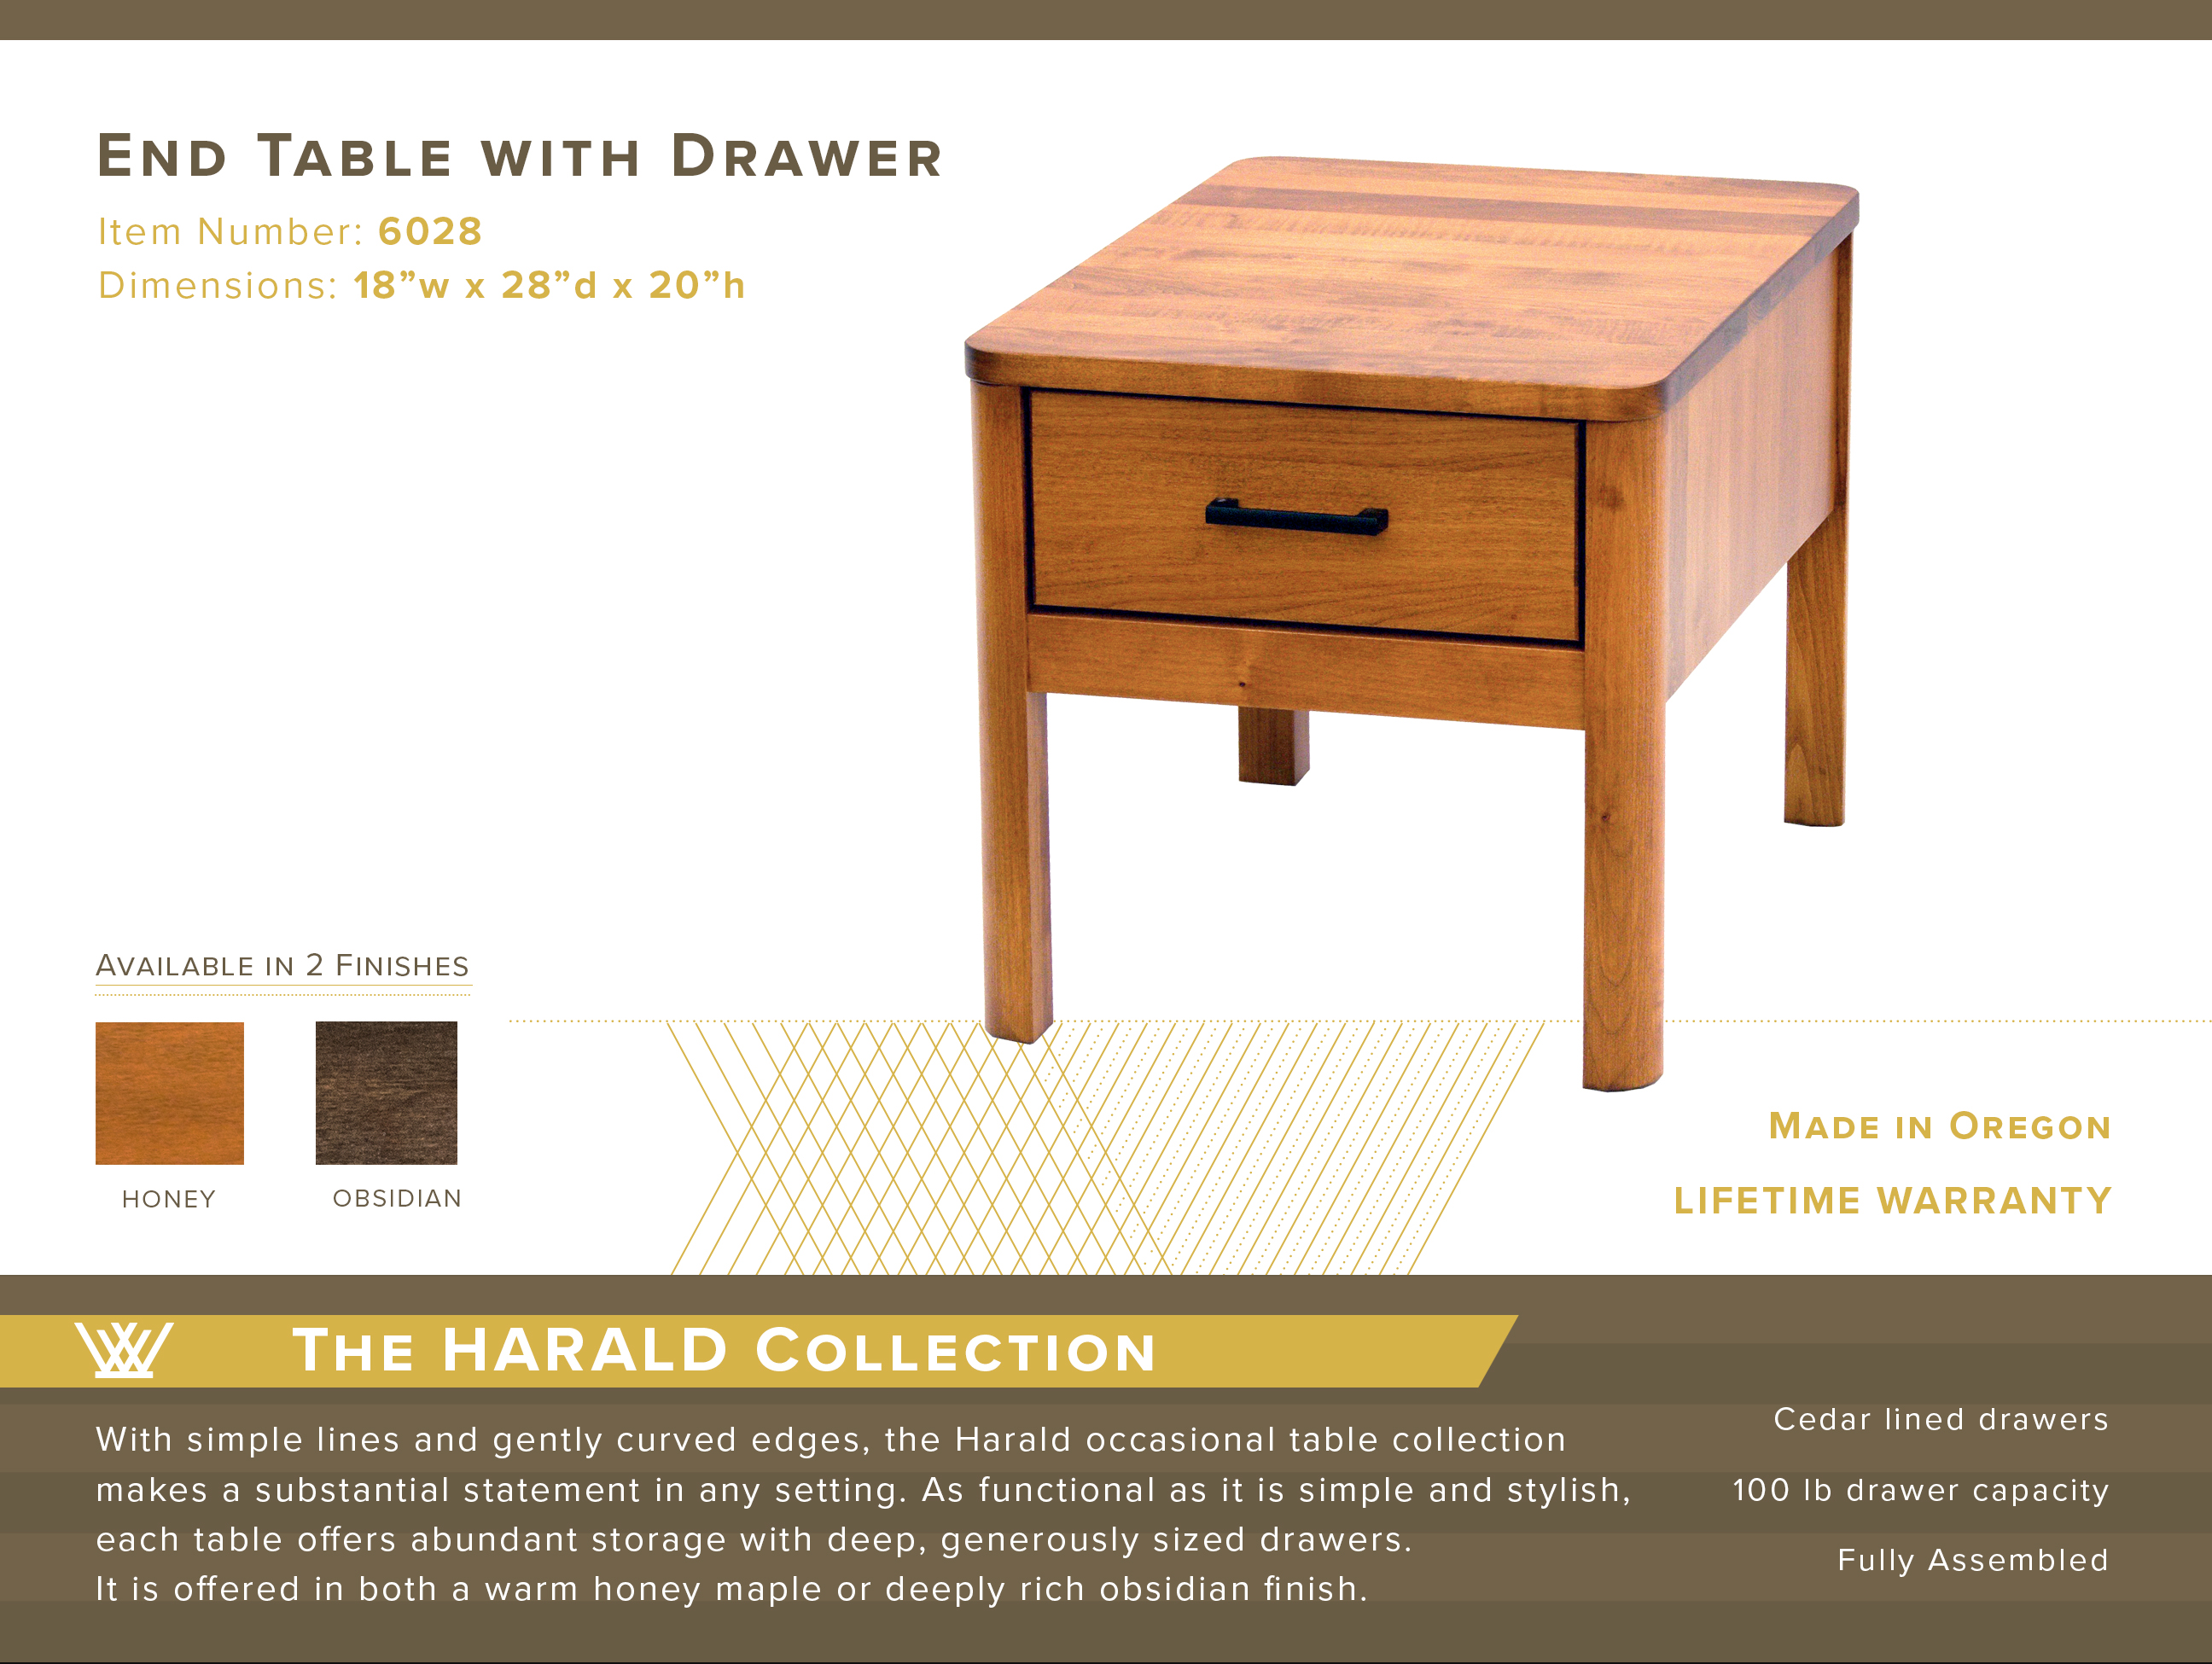 Harald End Table #6028